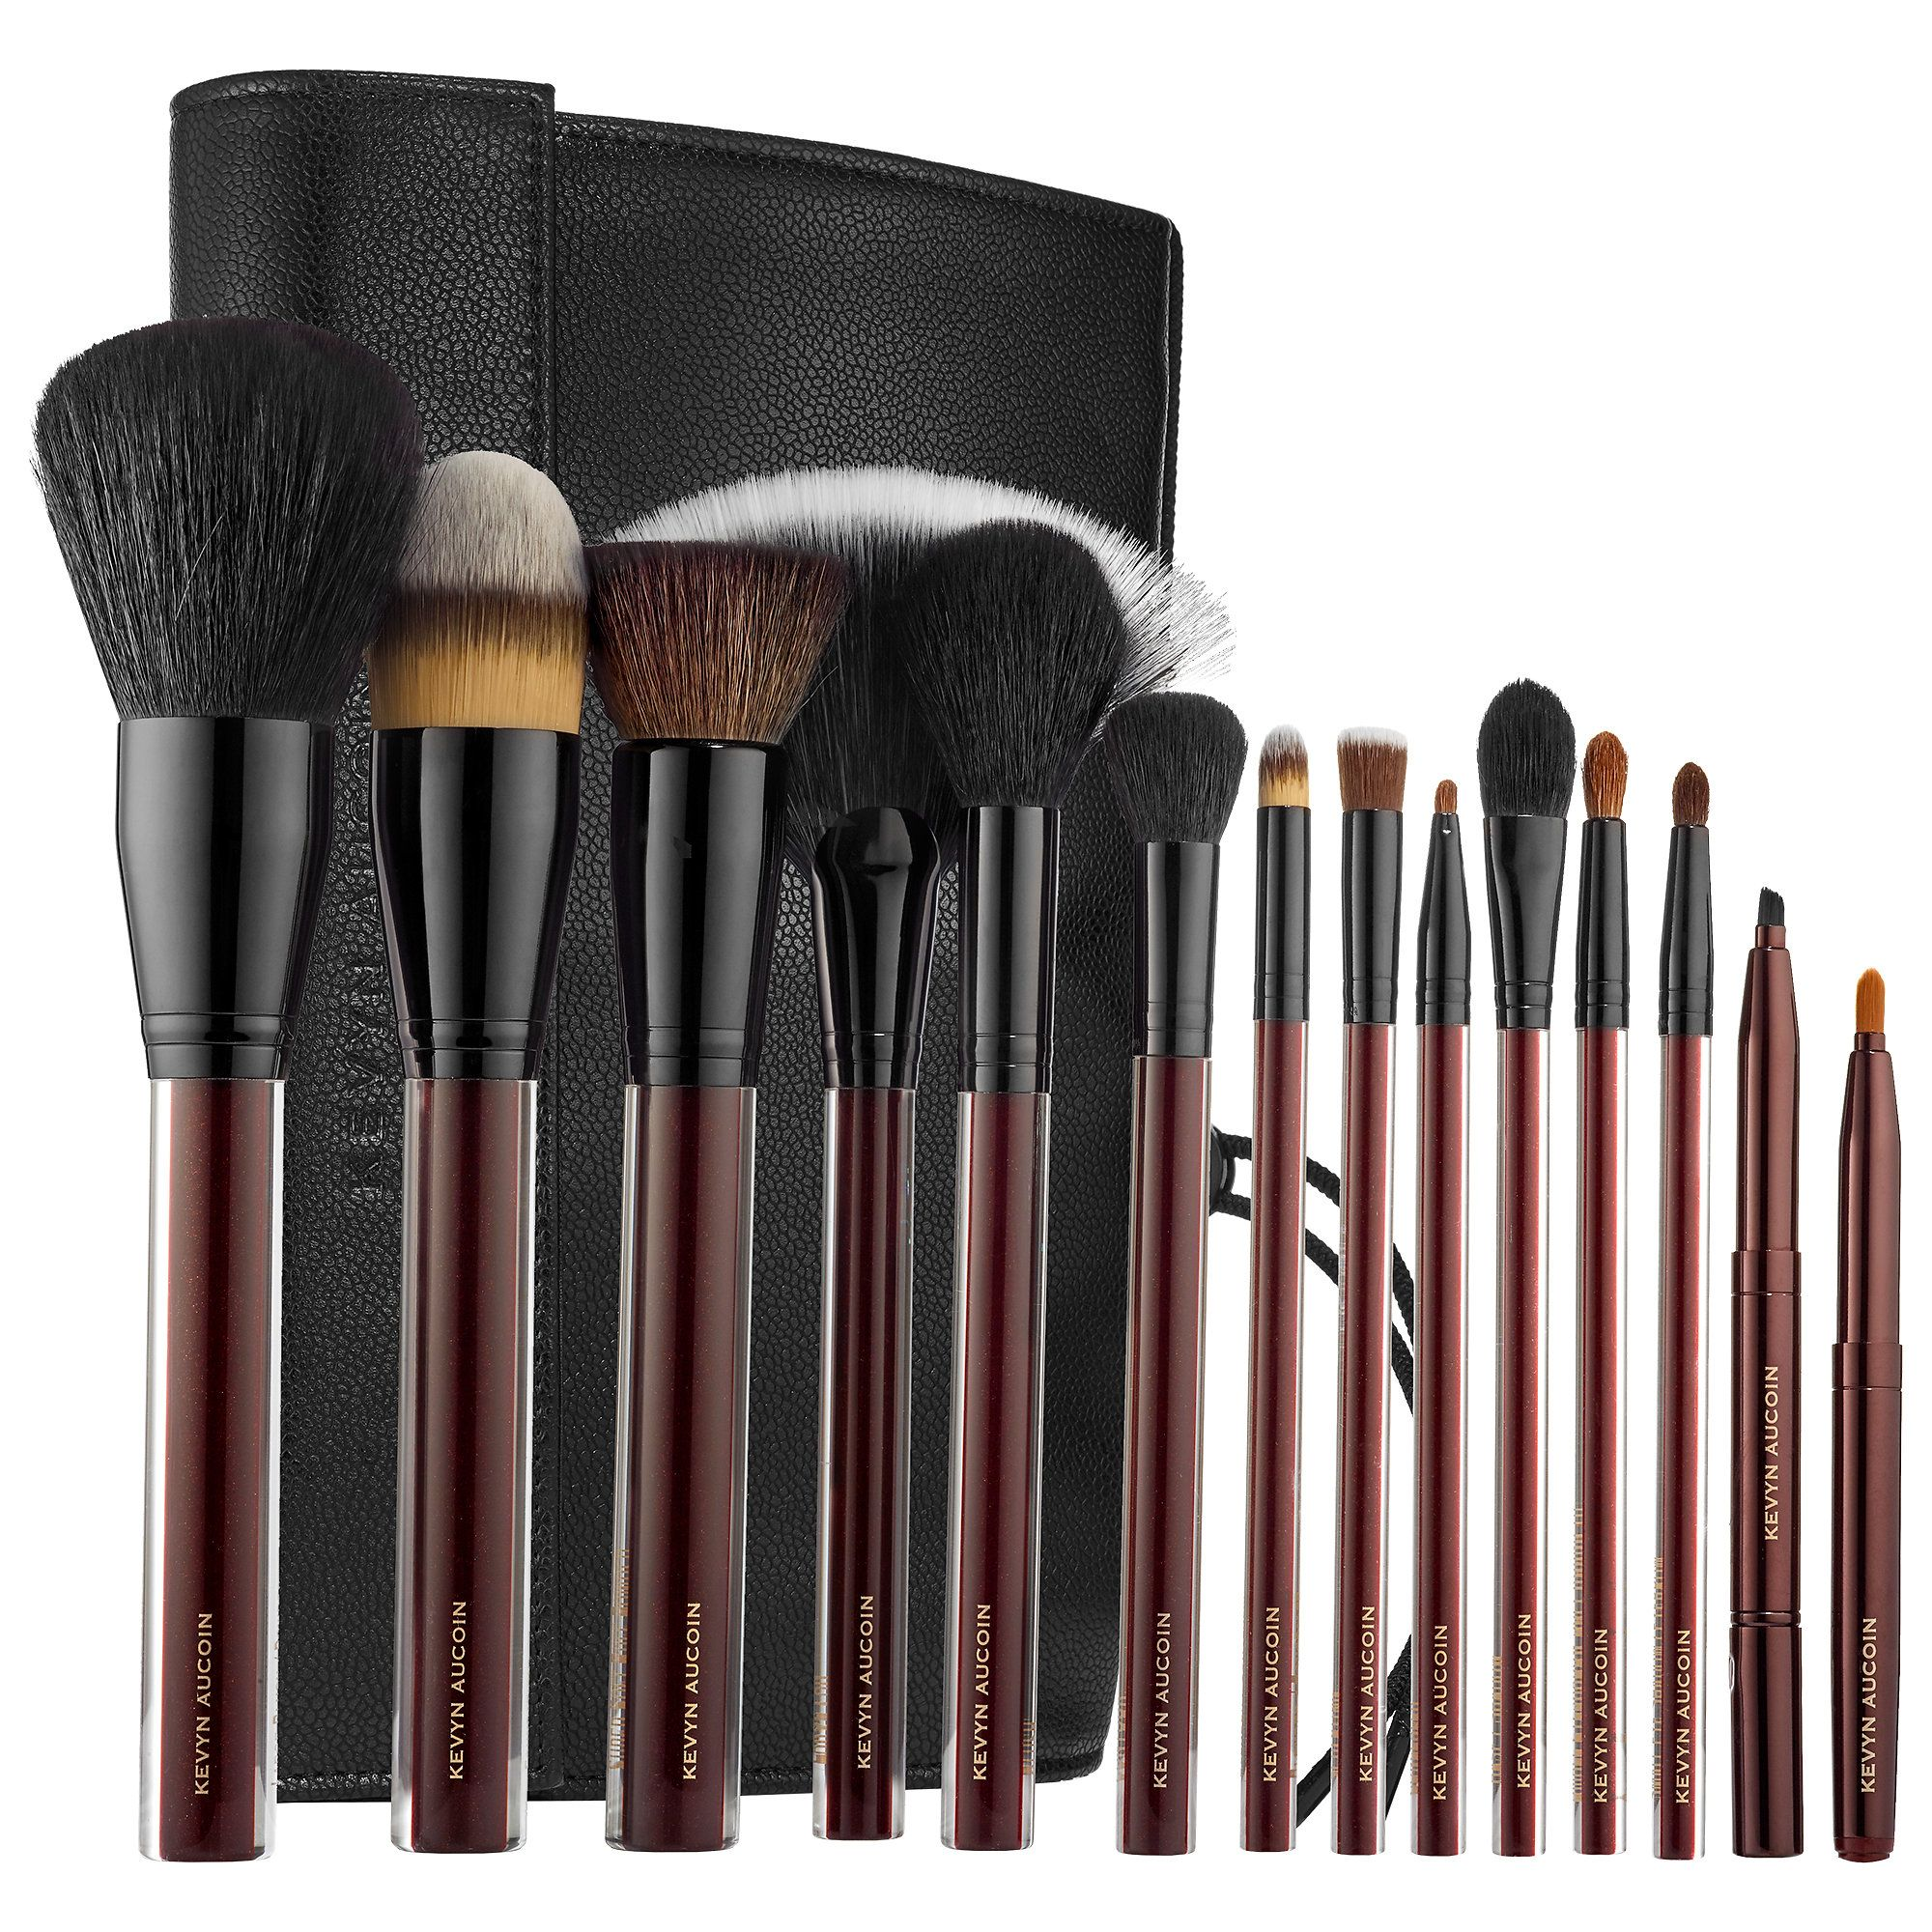 Shop Kevyn Aucoin's The Essential Brush Collection at